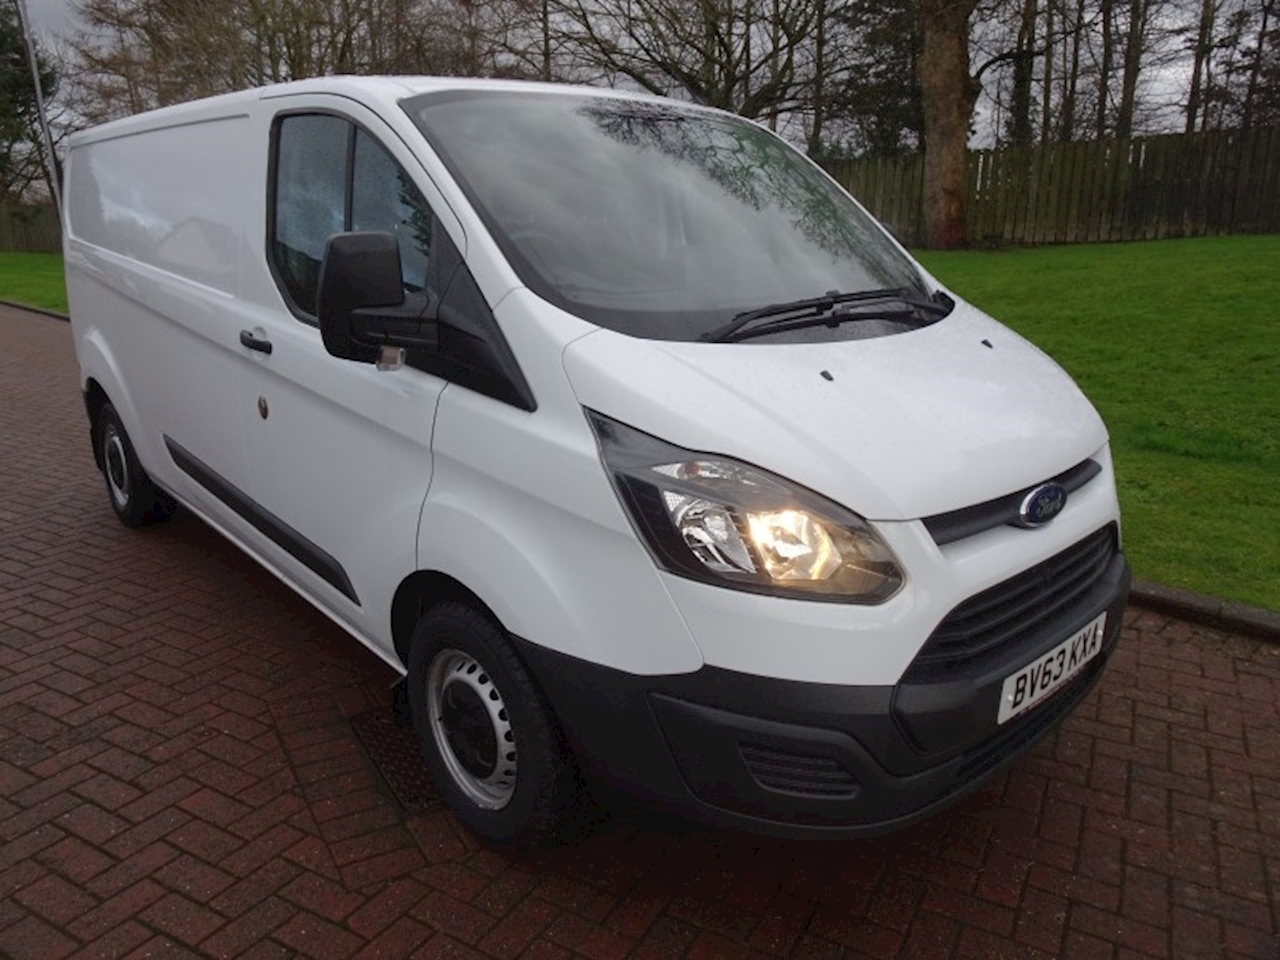 Ford Transit Custom 2.2 TDCi 290 ECOnetic Panel Van 5dr Diesel Manual L1 H2 (178 g/km, 98 bhp) Panel Van 2.2 Manual Diesel